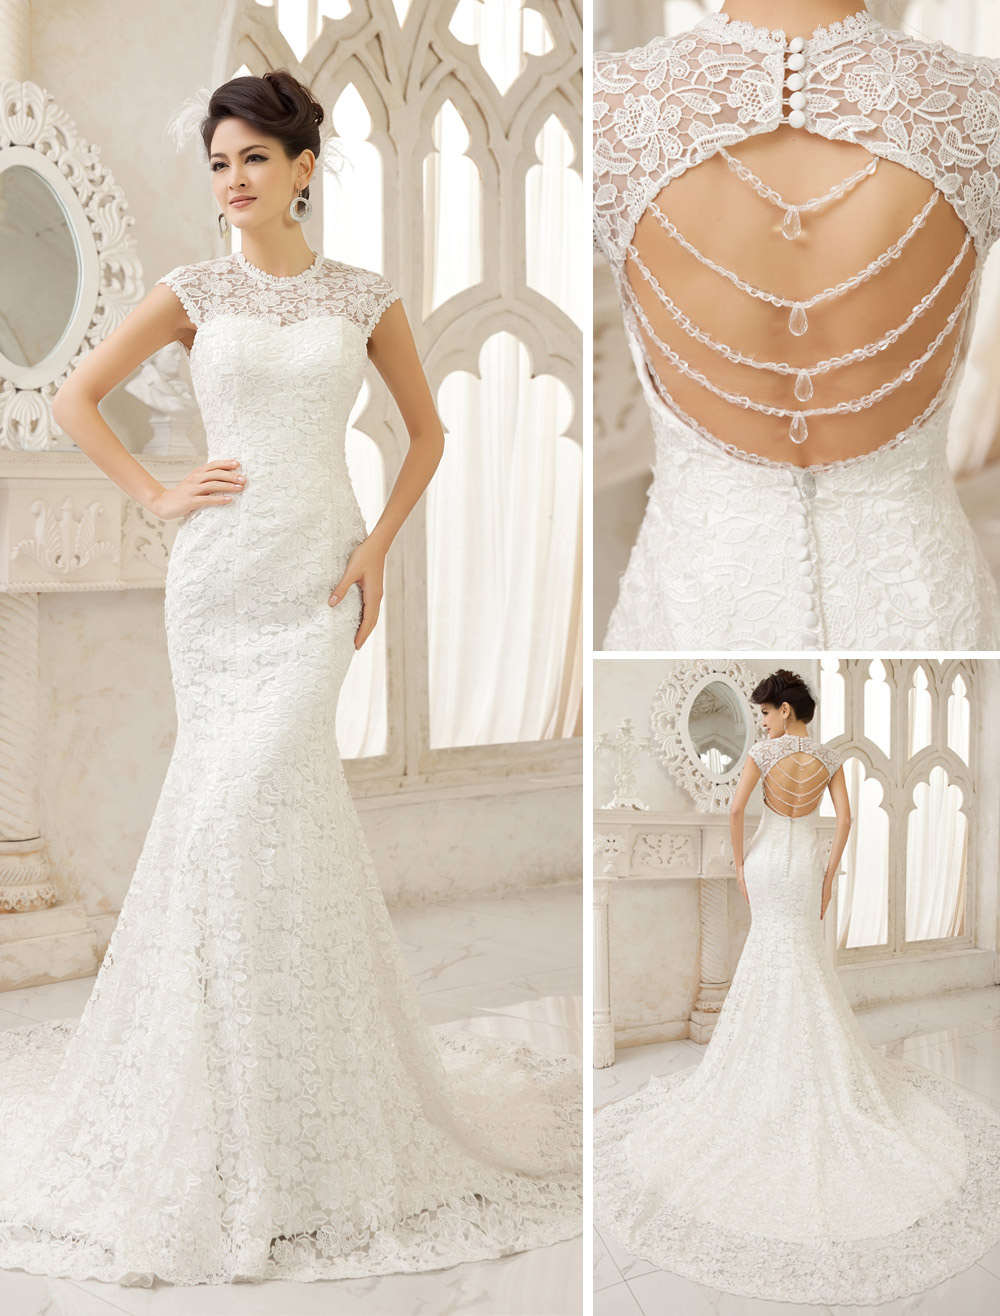 Ivory Mermaid Jewel Neck Cut Out Court Train Wedding Dress Milanoo